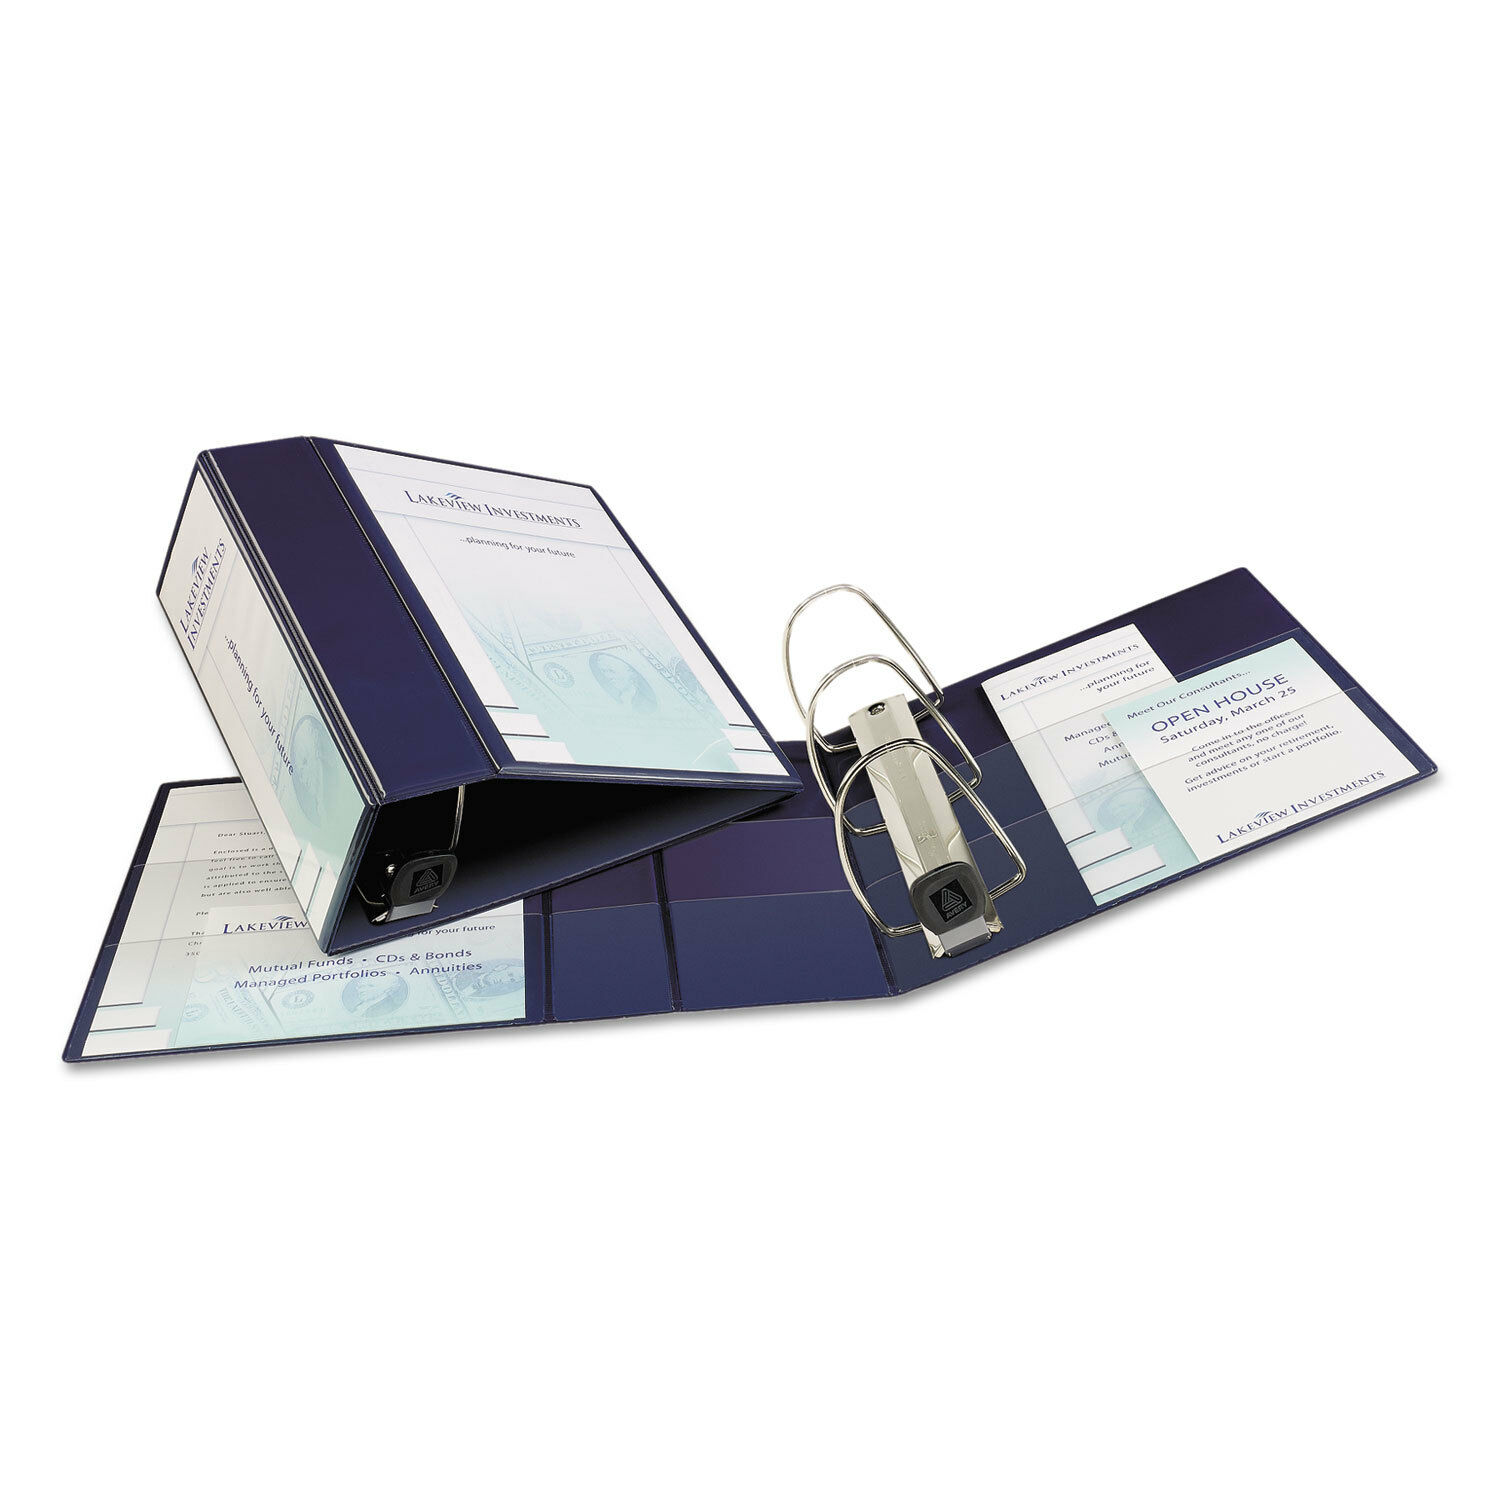 avery 79806 nonstick heavy duty ezd reference view binder 5in